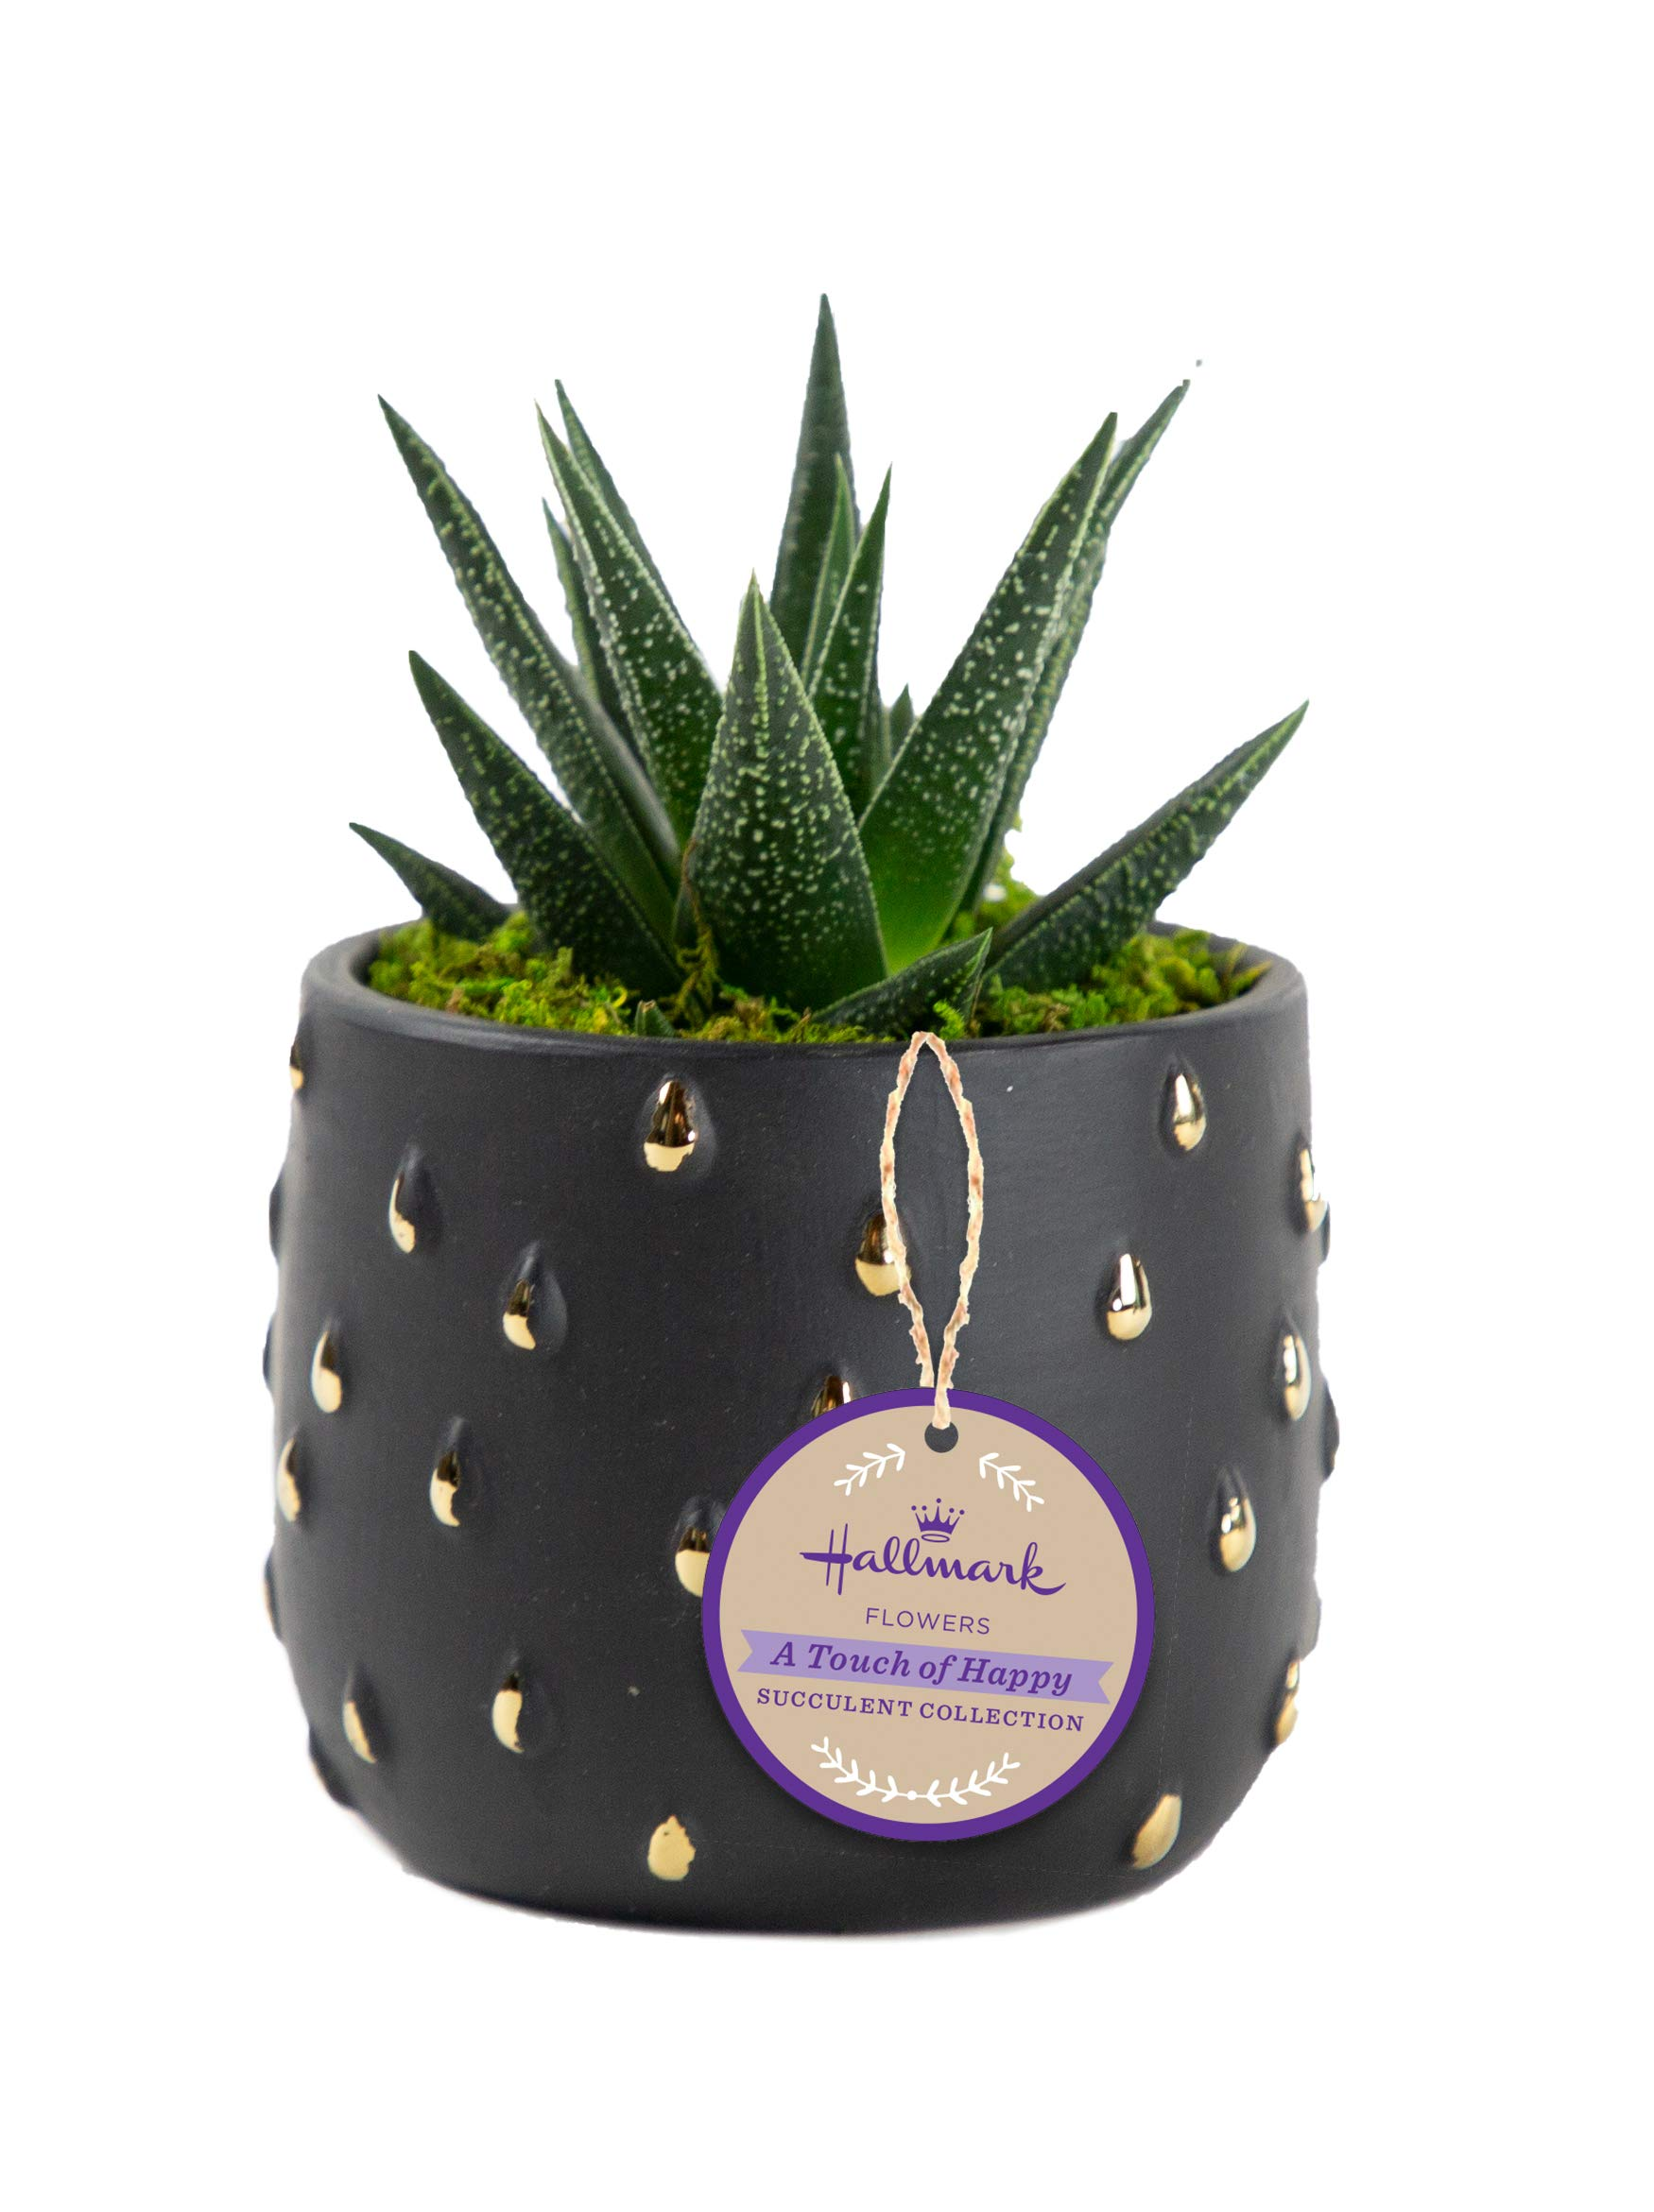 Live Succulents in Black & Gold Ceramic Containers, From Hallmark Flowers